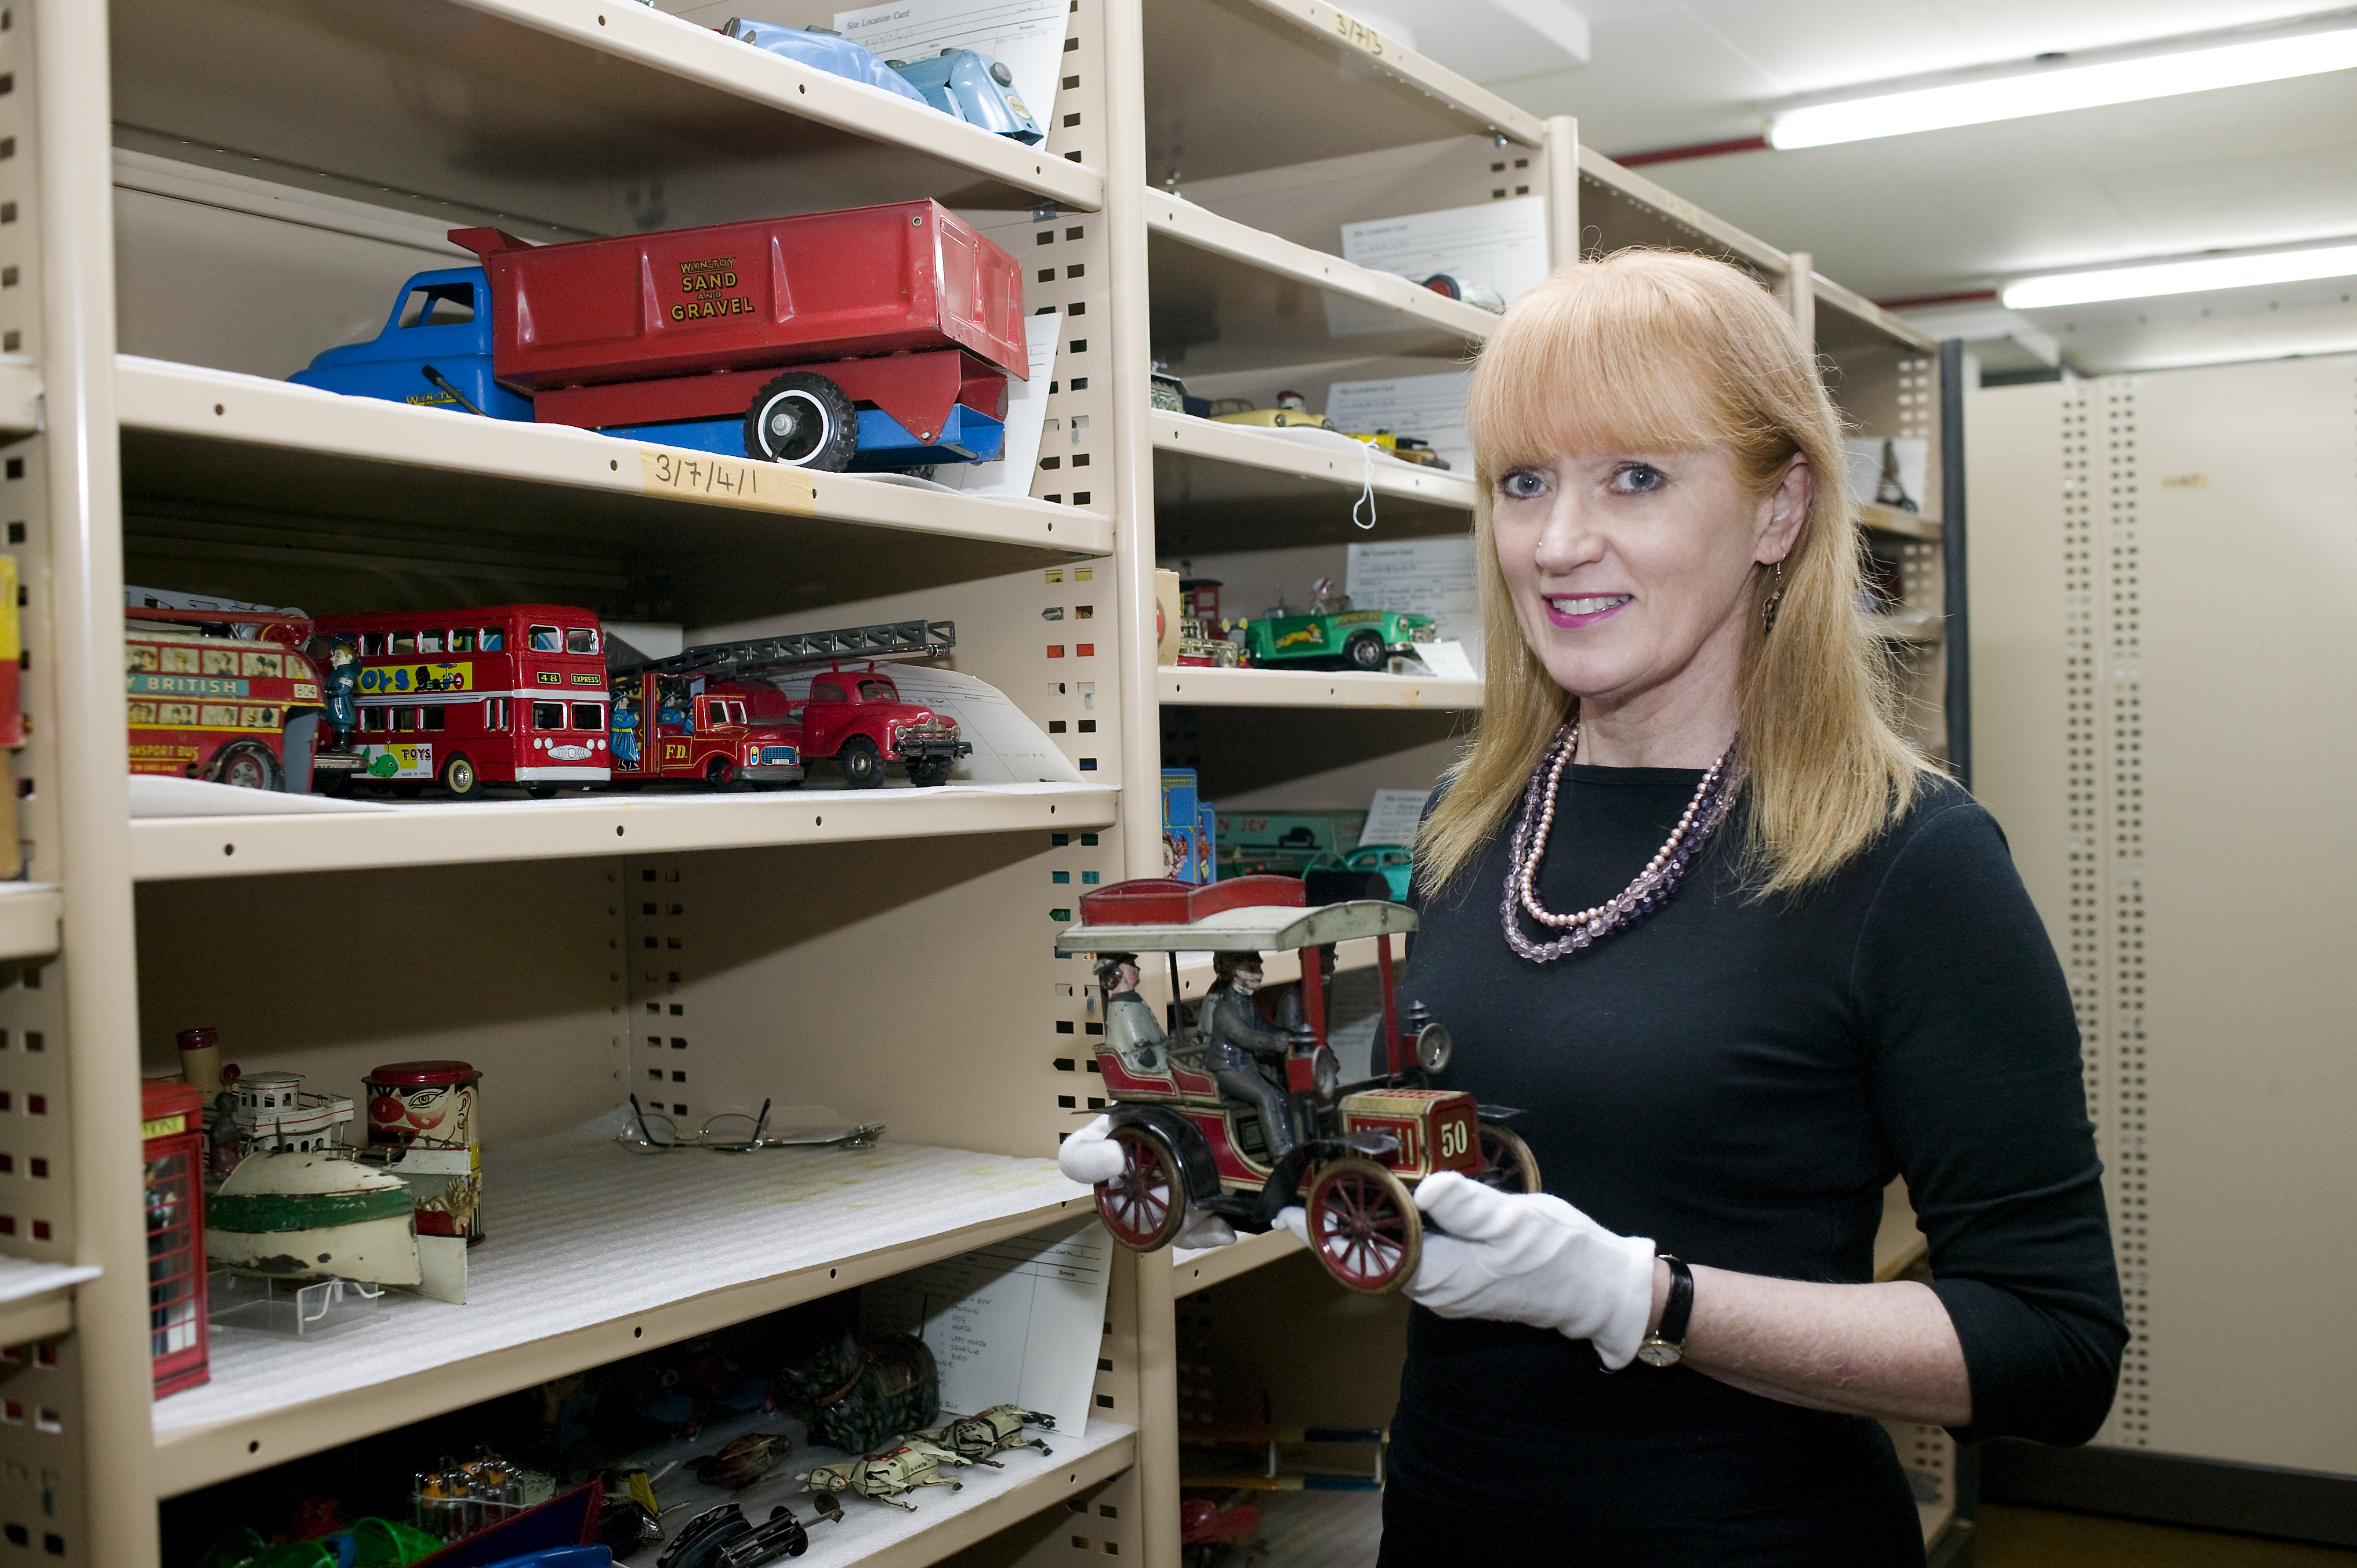 A woman holds a 1920s-style model car toy. She is standing in front of industrial shelving, which holds a variety of toy cars, buses and trucks.